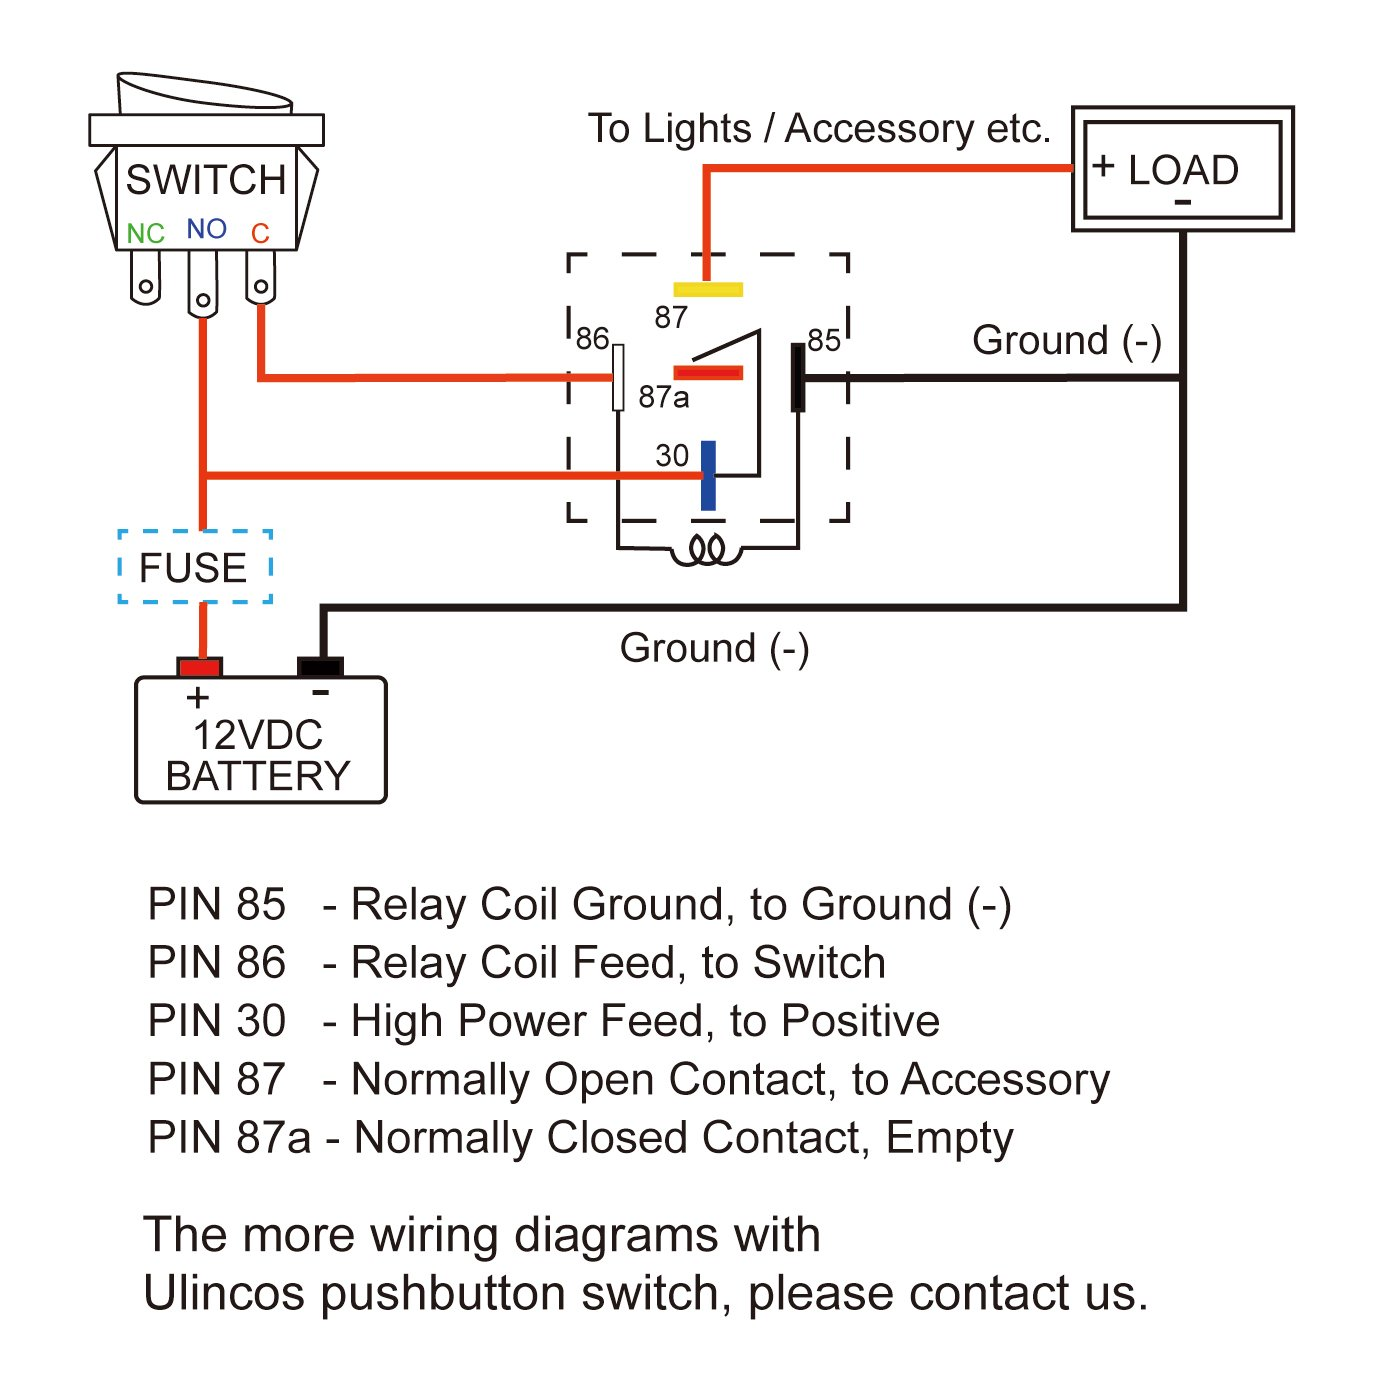 71lCbMzqaoL._SL1400_ wiring diagram for absolute rls125 relay relay drawing \u2022 indy500 co H8QTB Ford Relay Wiring Diagram at n-0.co